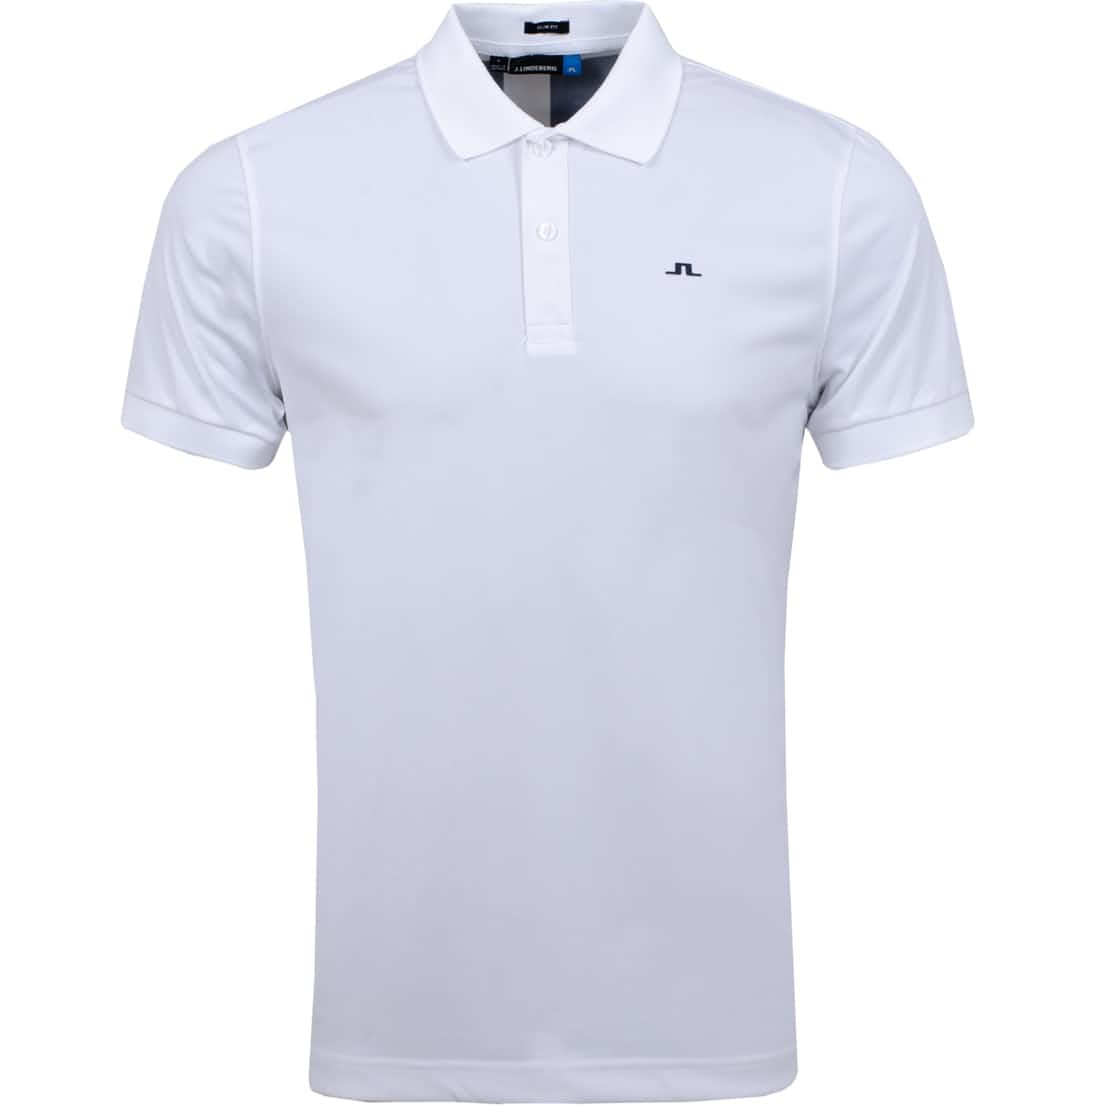 Beau Slim Fit Recycled TX Jersey White - SS20